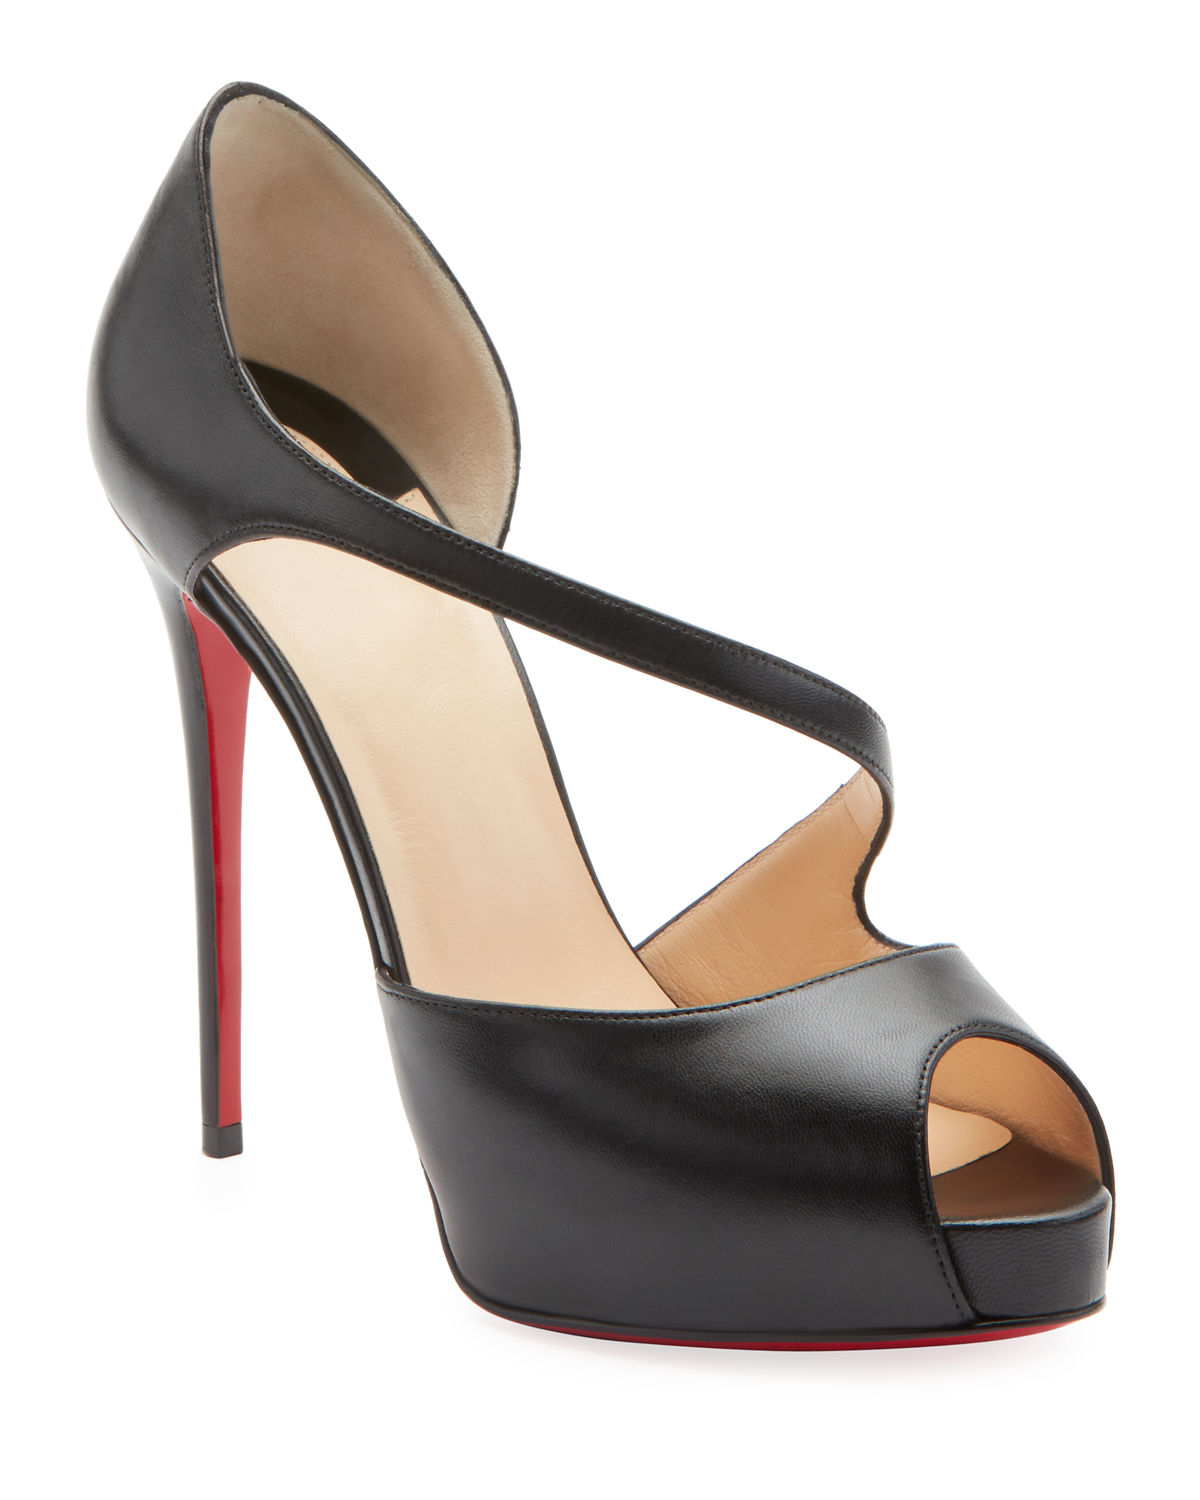 Catchy Two Red Sole Pumps